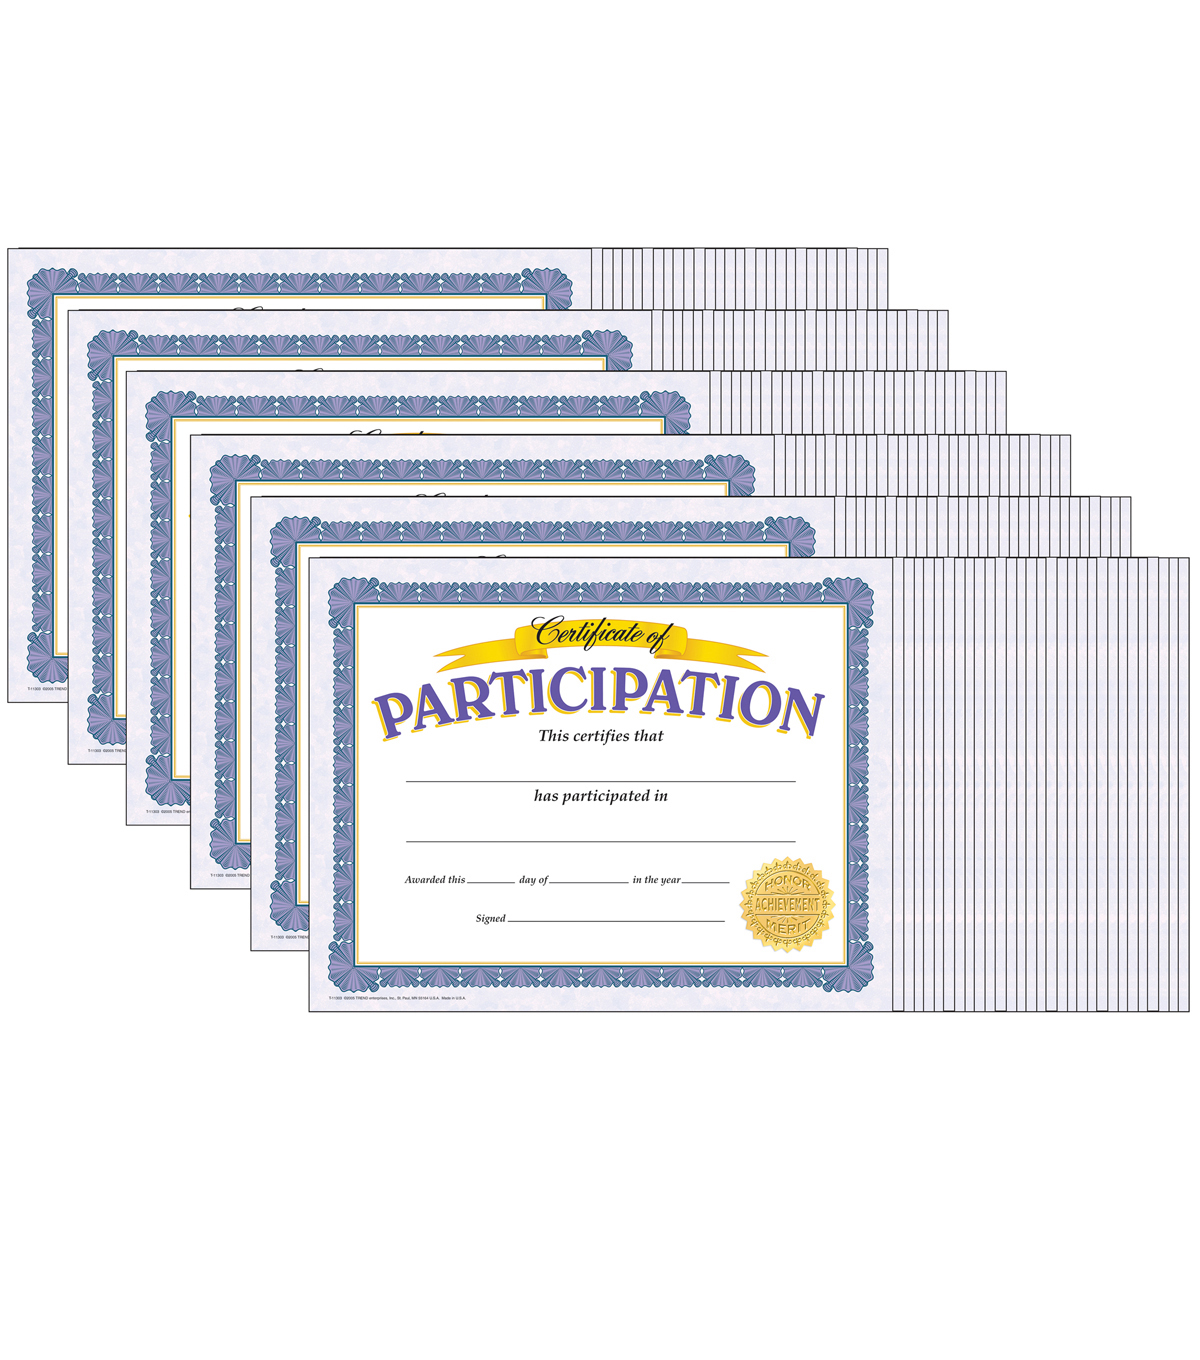 Certificate of Participation Classic Certificates, 30 Per Pack, 6 Packs